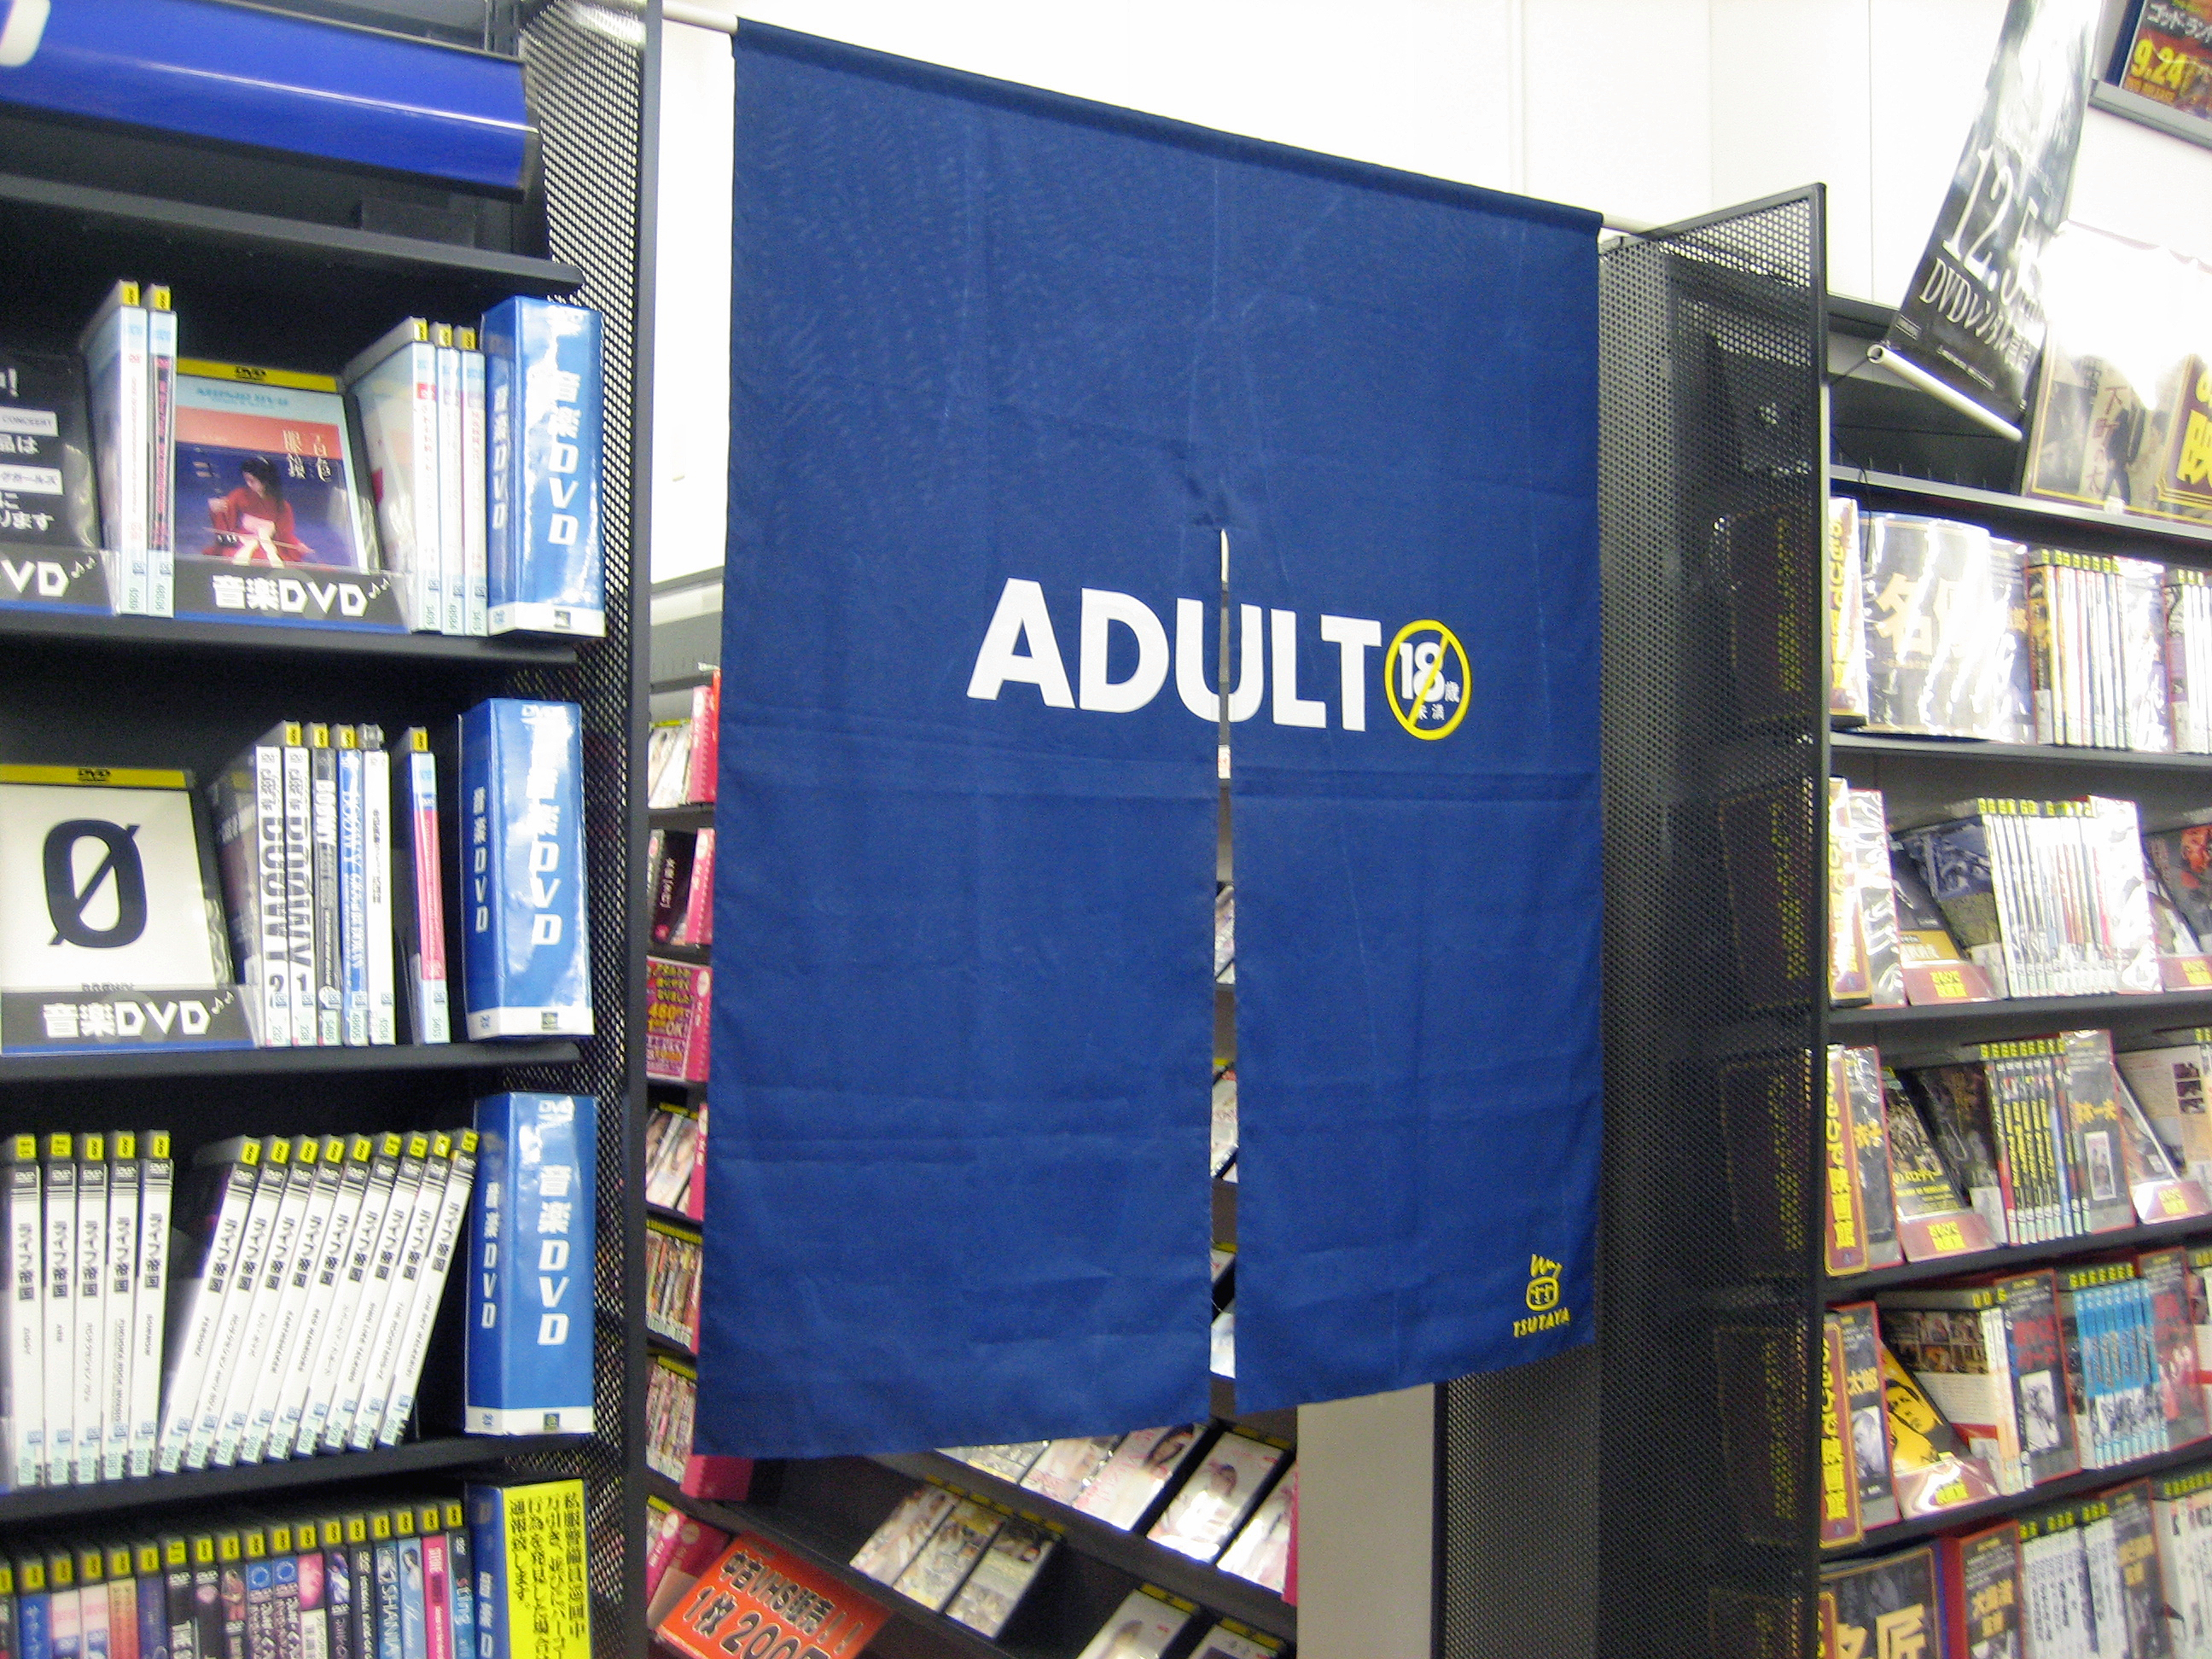 Section adult video